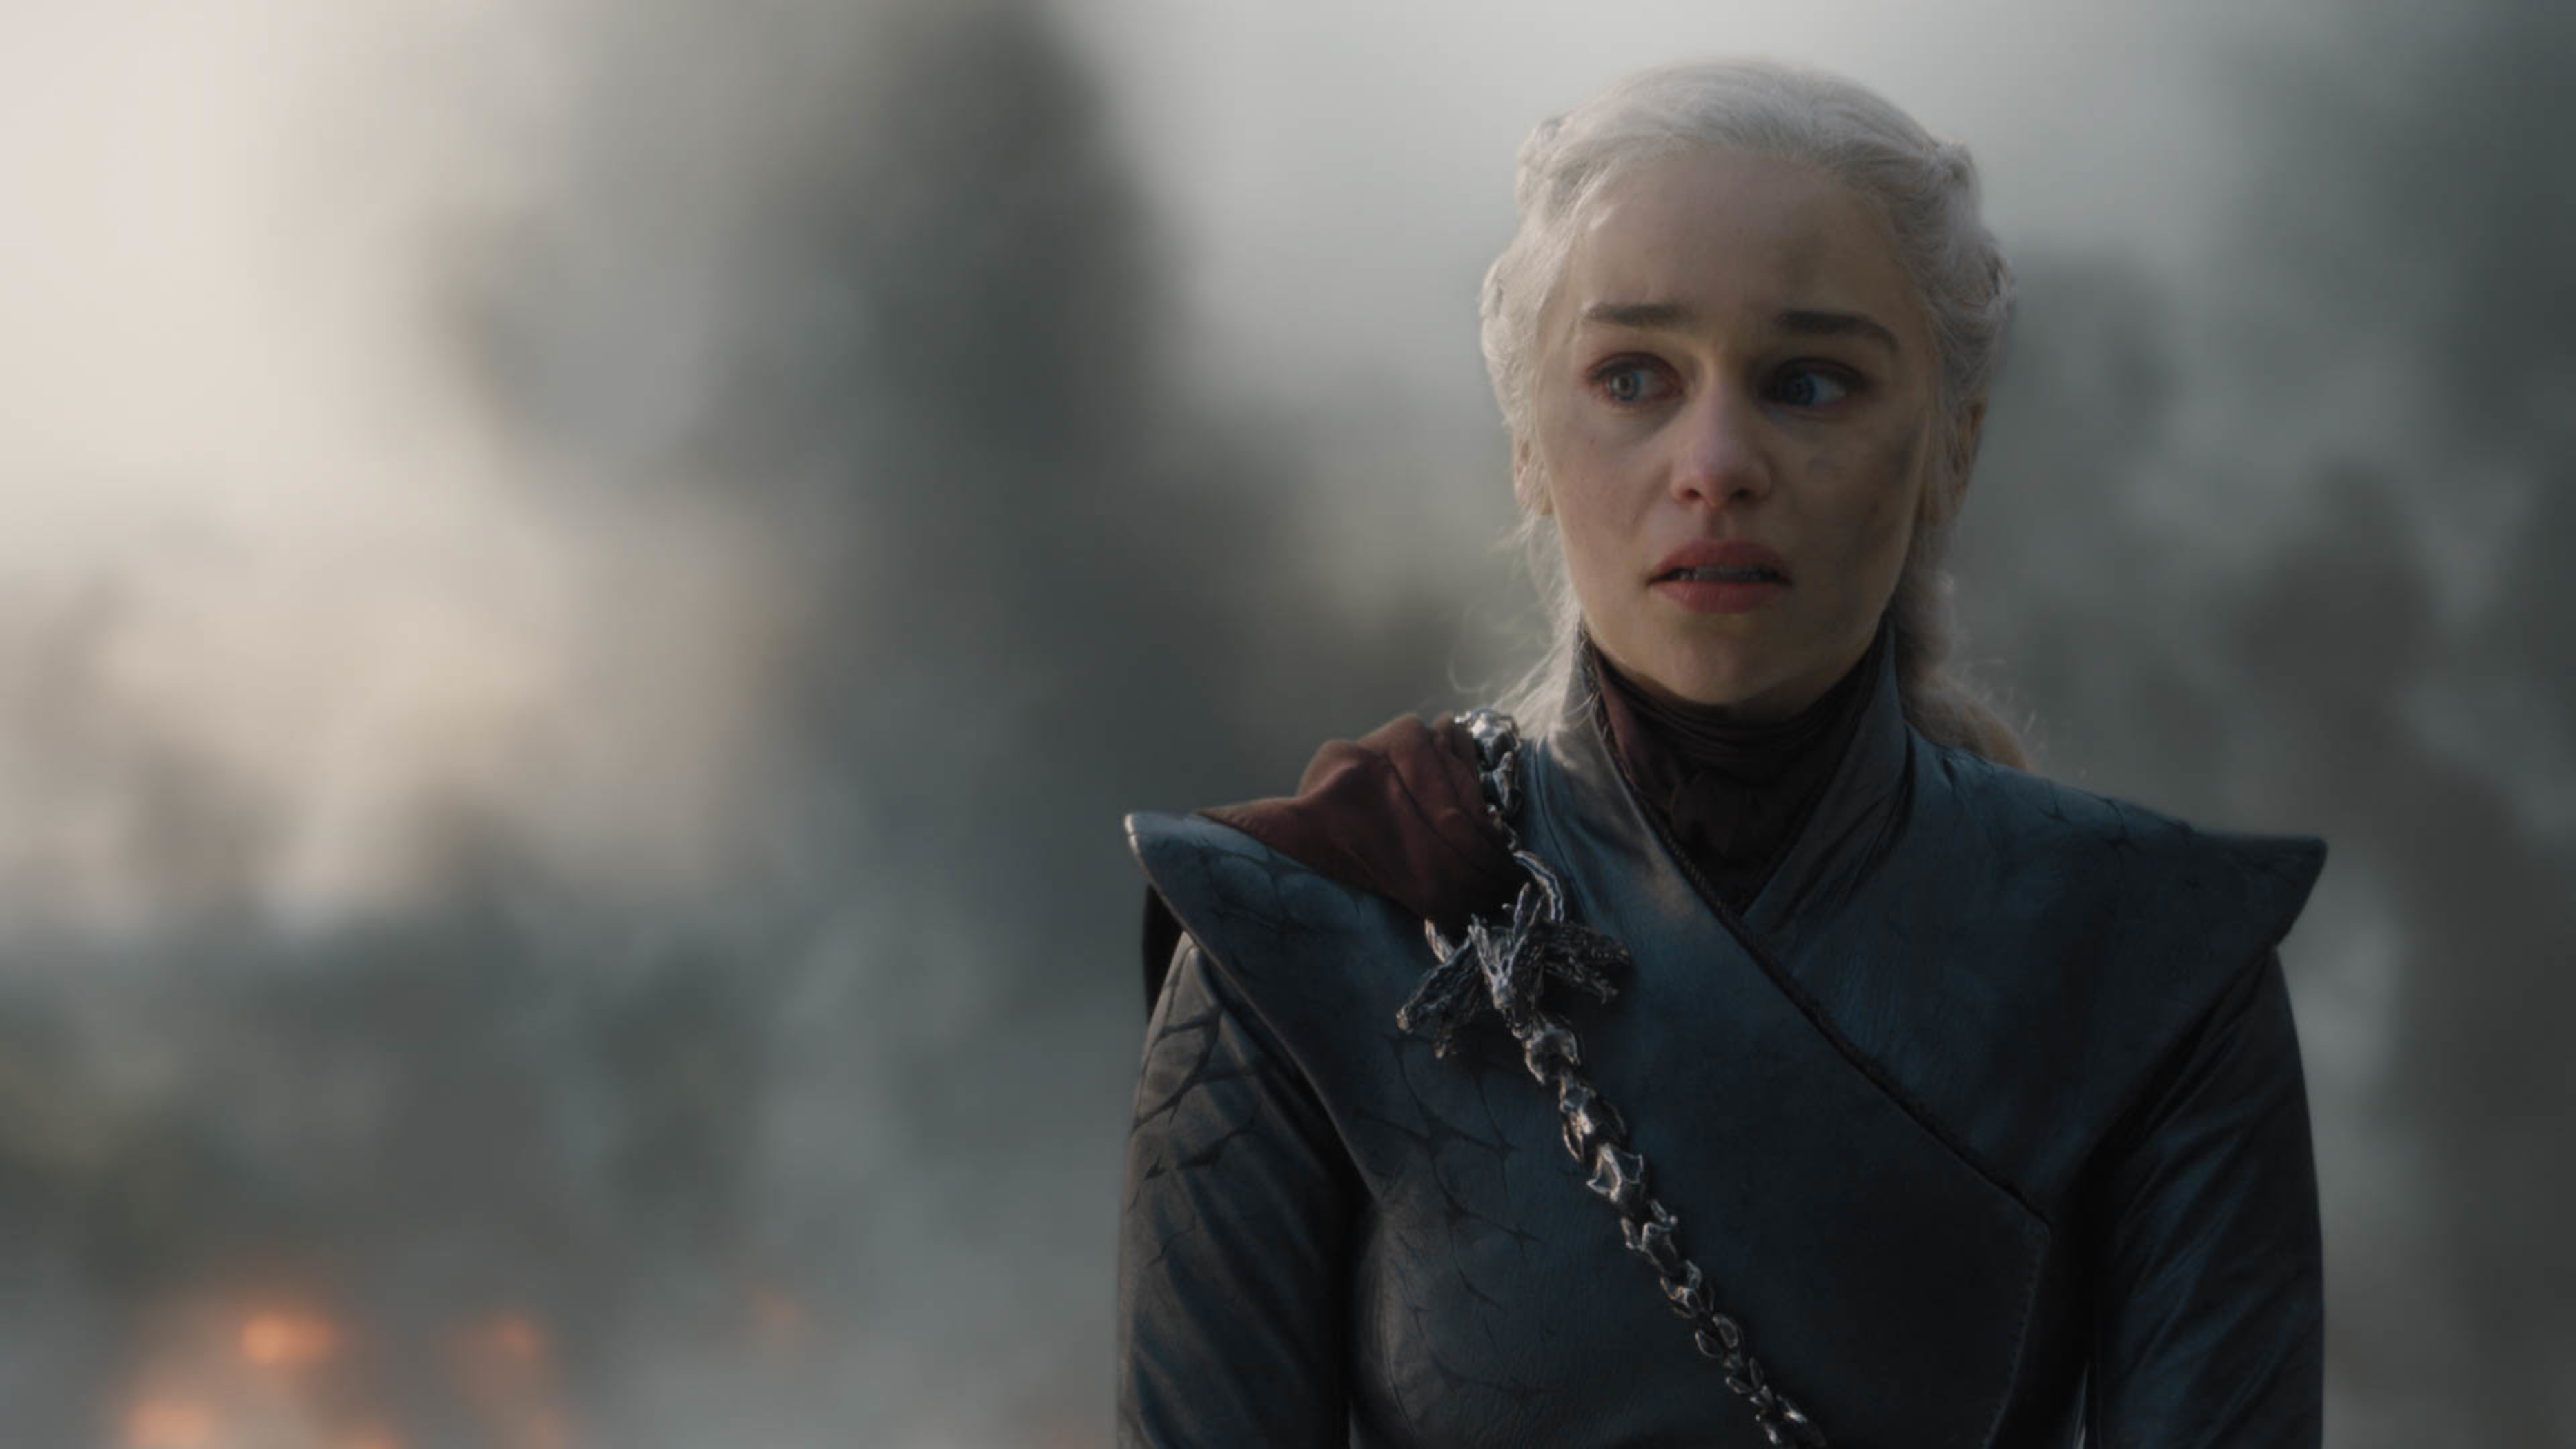 Daenerys right before she decides to burn all of King's Landing (Season 8, Episode 5 of 'Game of Thrones').